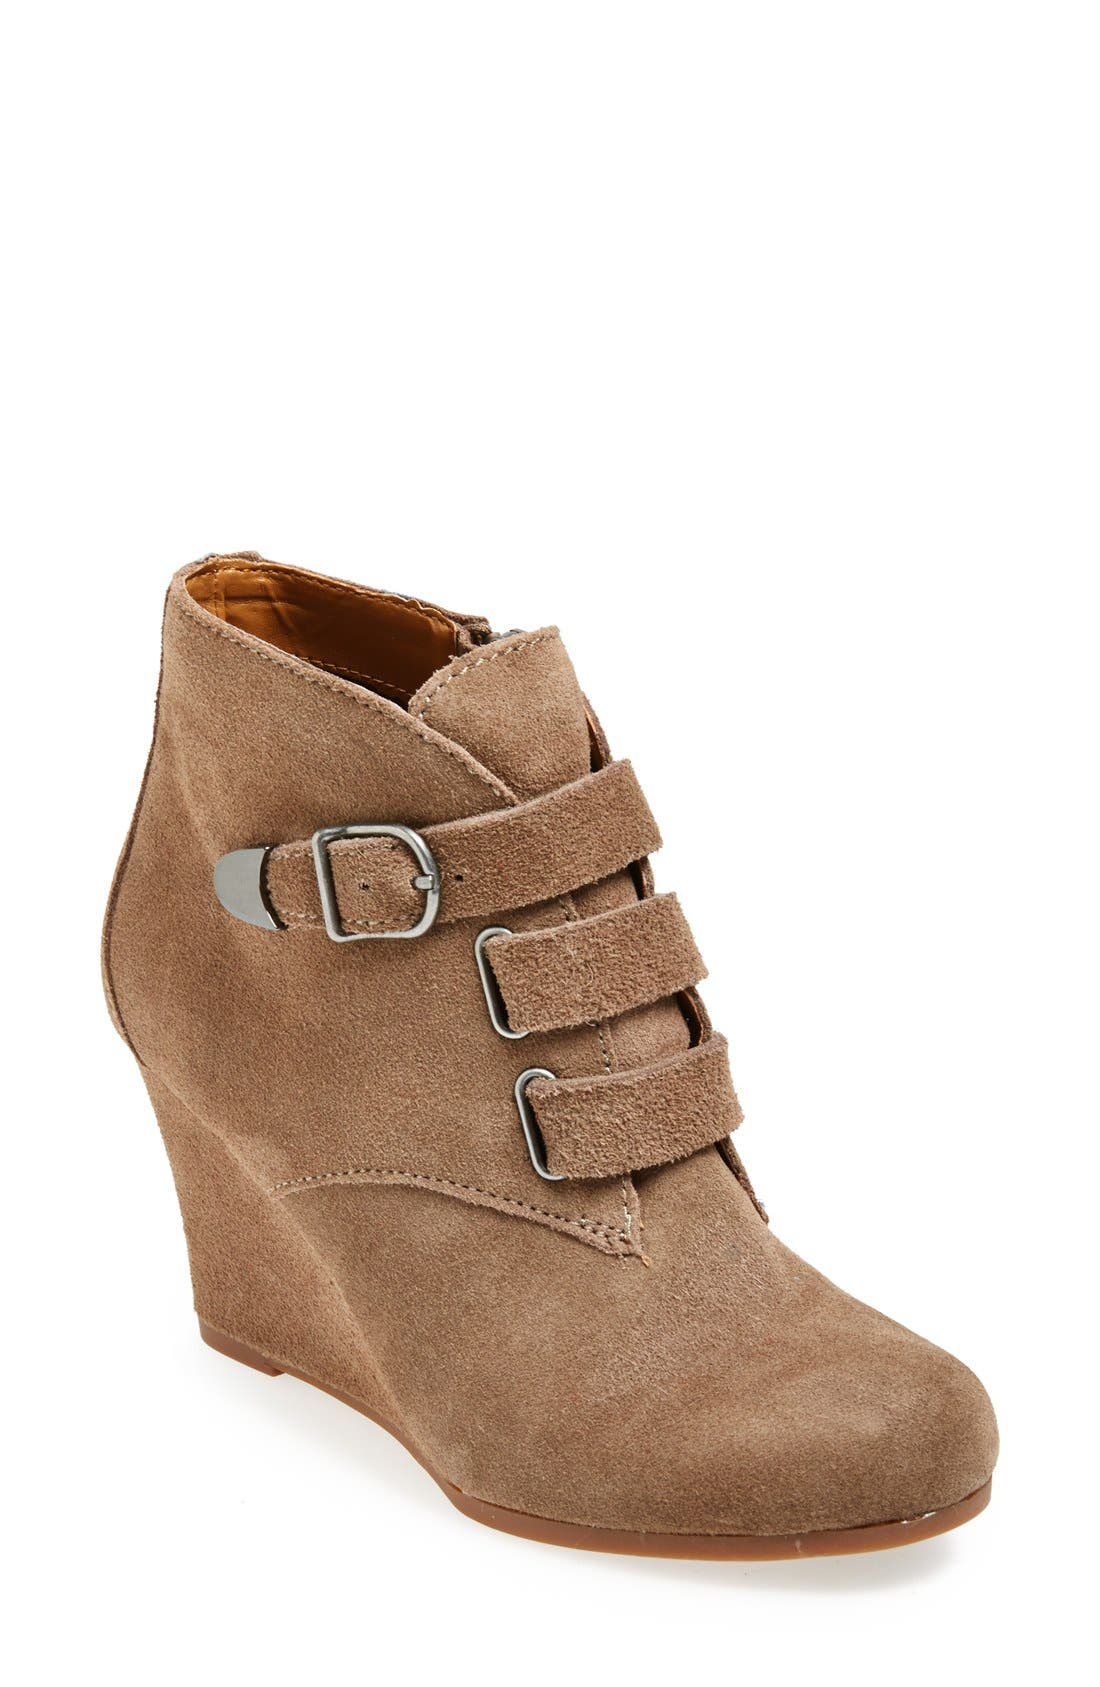 Main Image - DV by Dolce Vita 'Preslee' Wedge Bootie (Women)